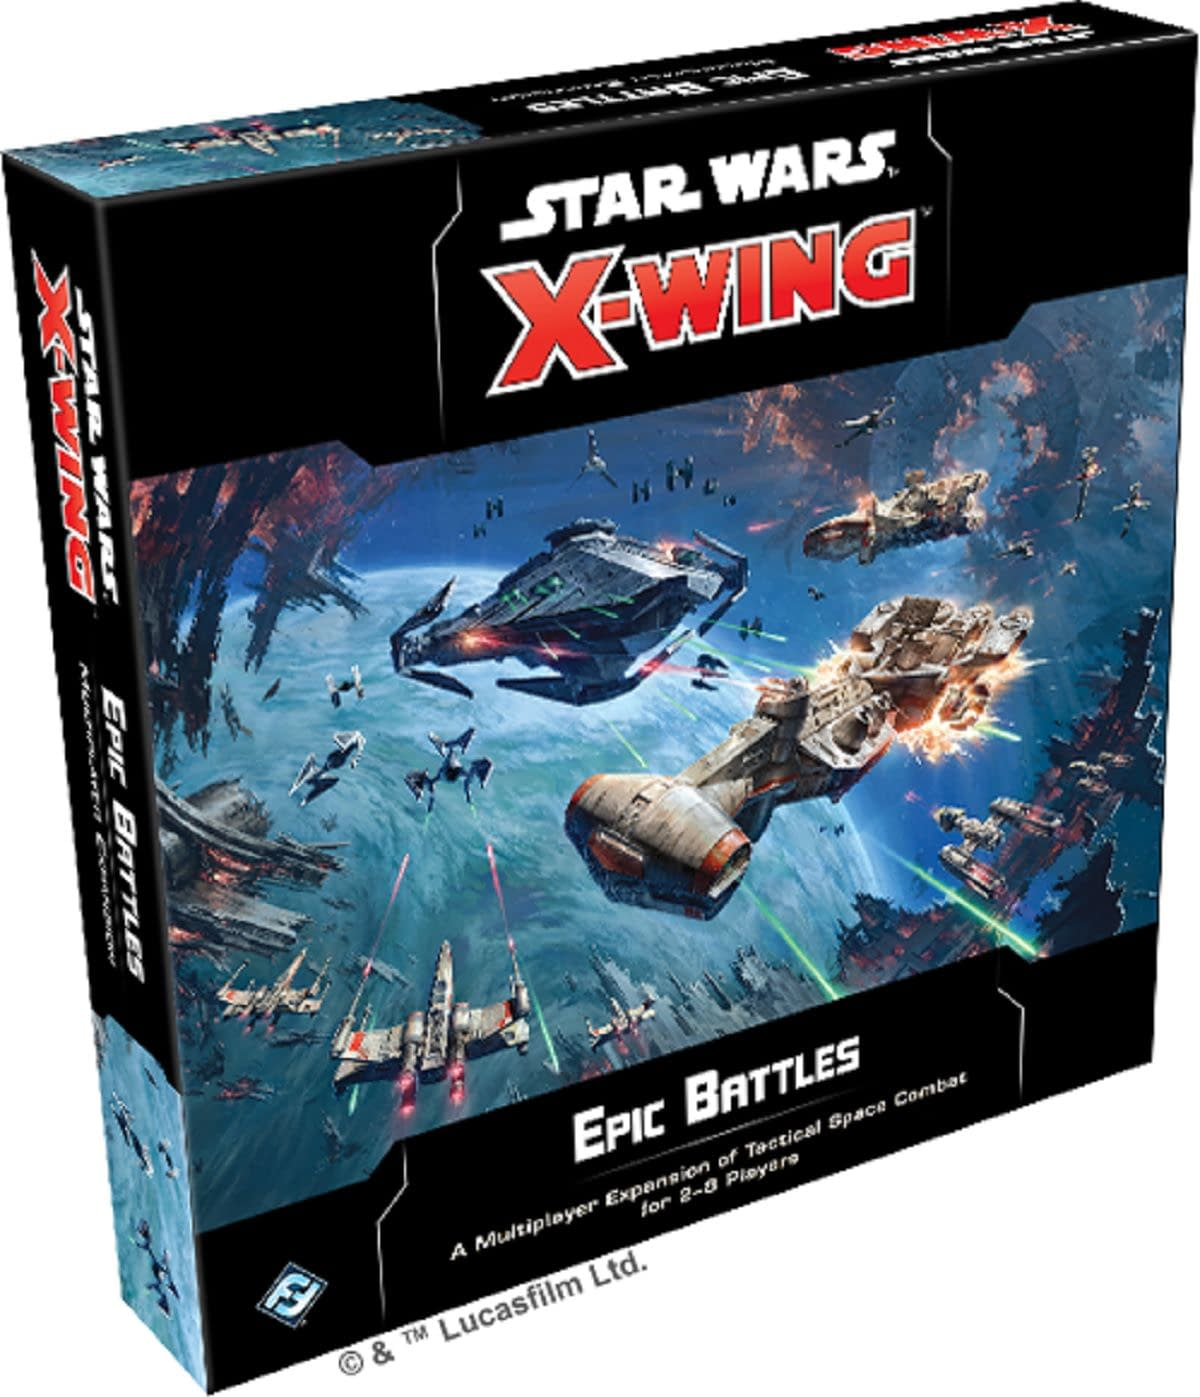 """Star Wars: X-Wing"" Gets ""Epic Battles"" Expansion from Fantasy Flight Games"